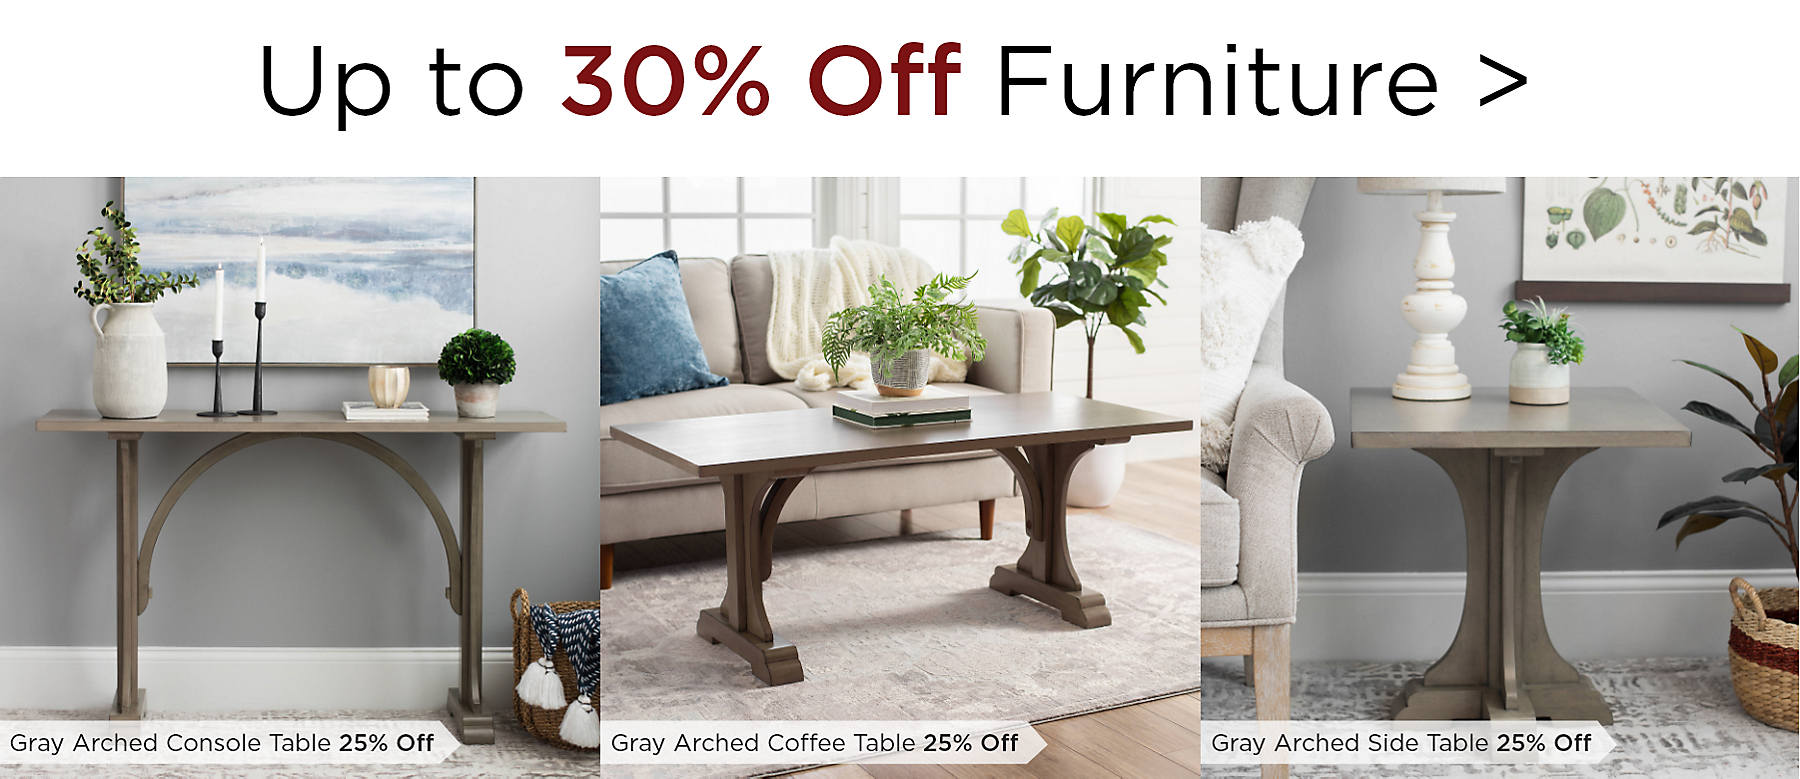 Up to 30% Off Furniture Featuring Gray Arched Console Table at 25% Off Gray Arched Coffee Table at 25% Off Gray Arched Side Table at 25% off